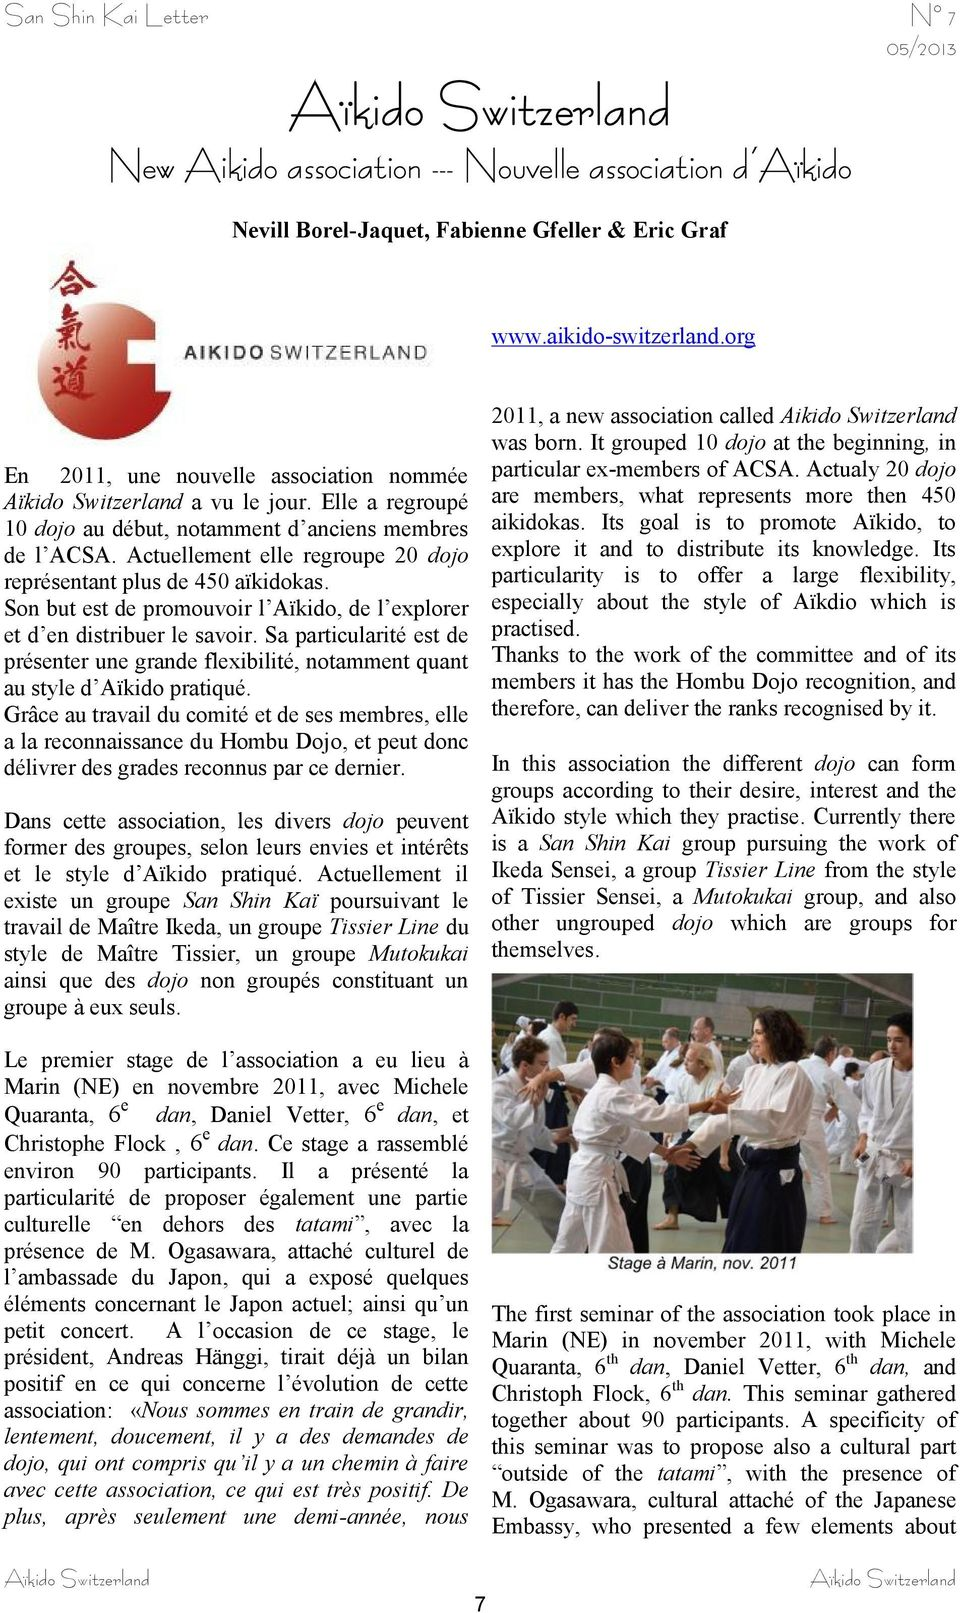 Actualy 20 dojo are members, what represents more then 450 aikidokas. Its goal is to promote Aïkido, to explore it and to distribute its knowledge.